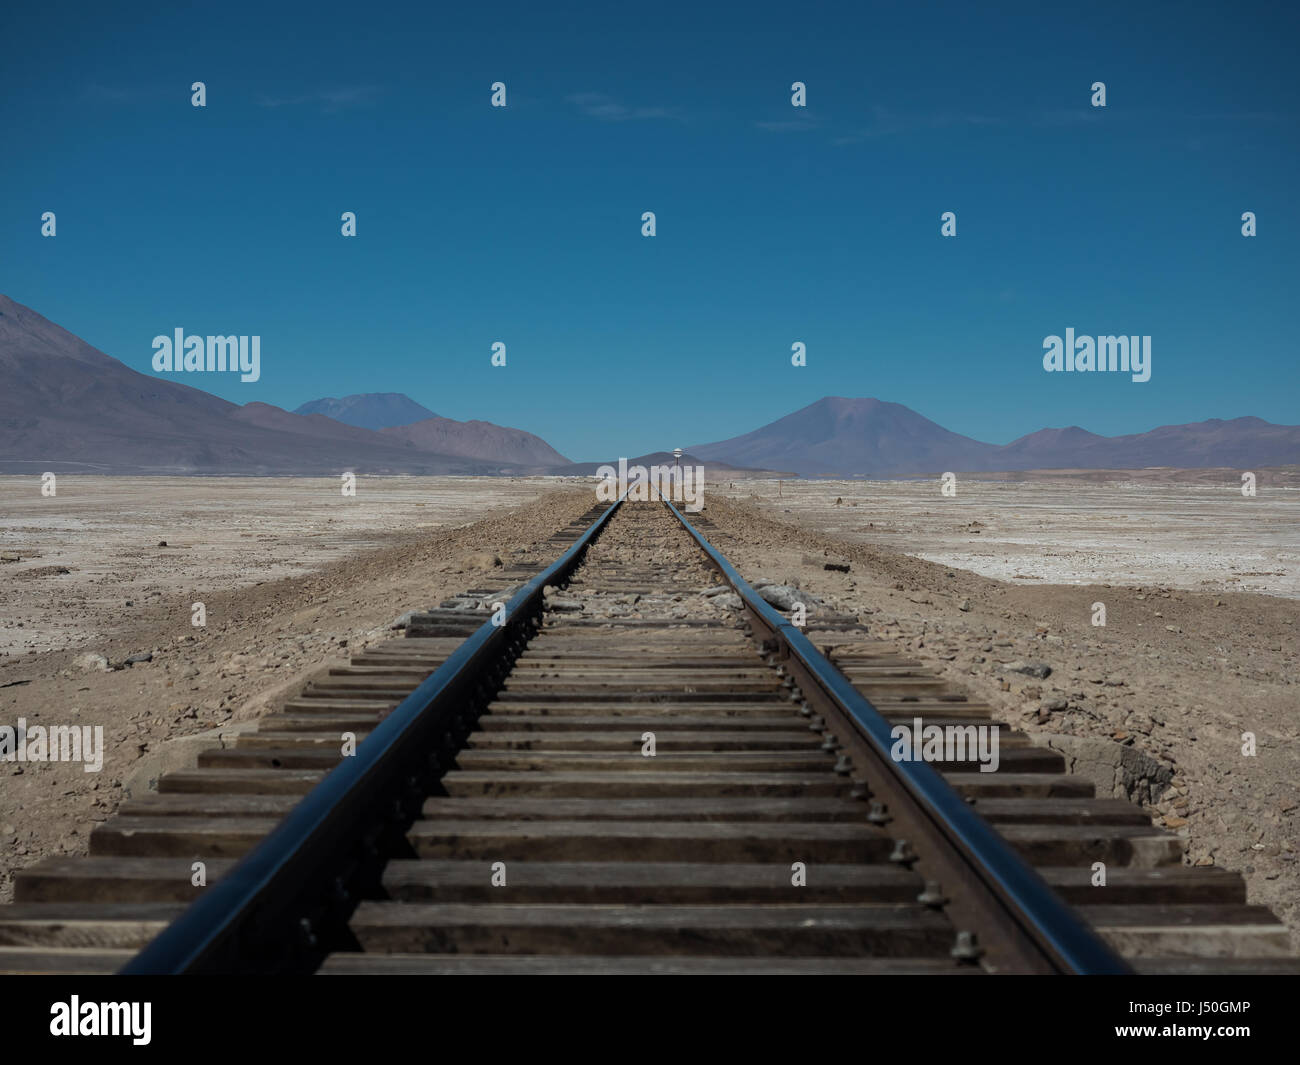 Straight railway through Atacama Desert, near Uyuni Salt Flats, Bolivia, South America. - Stock Image